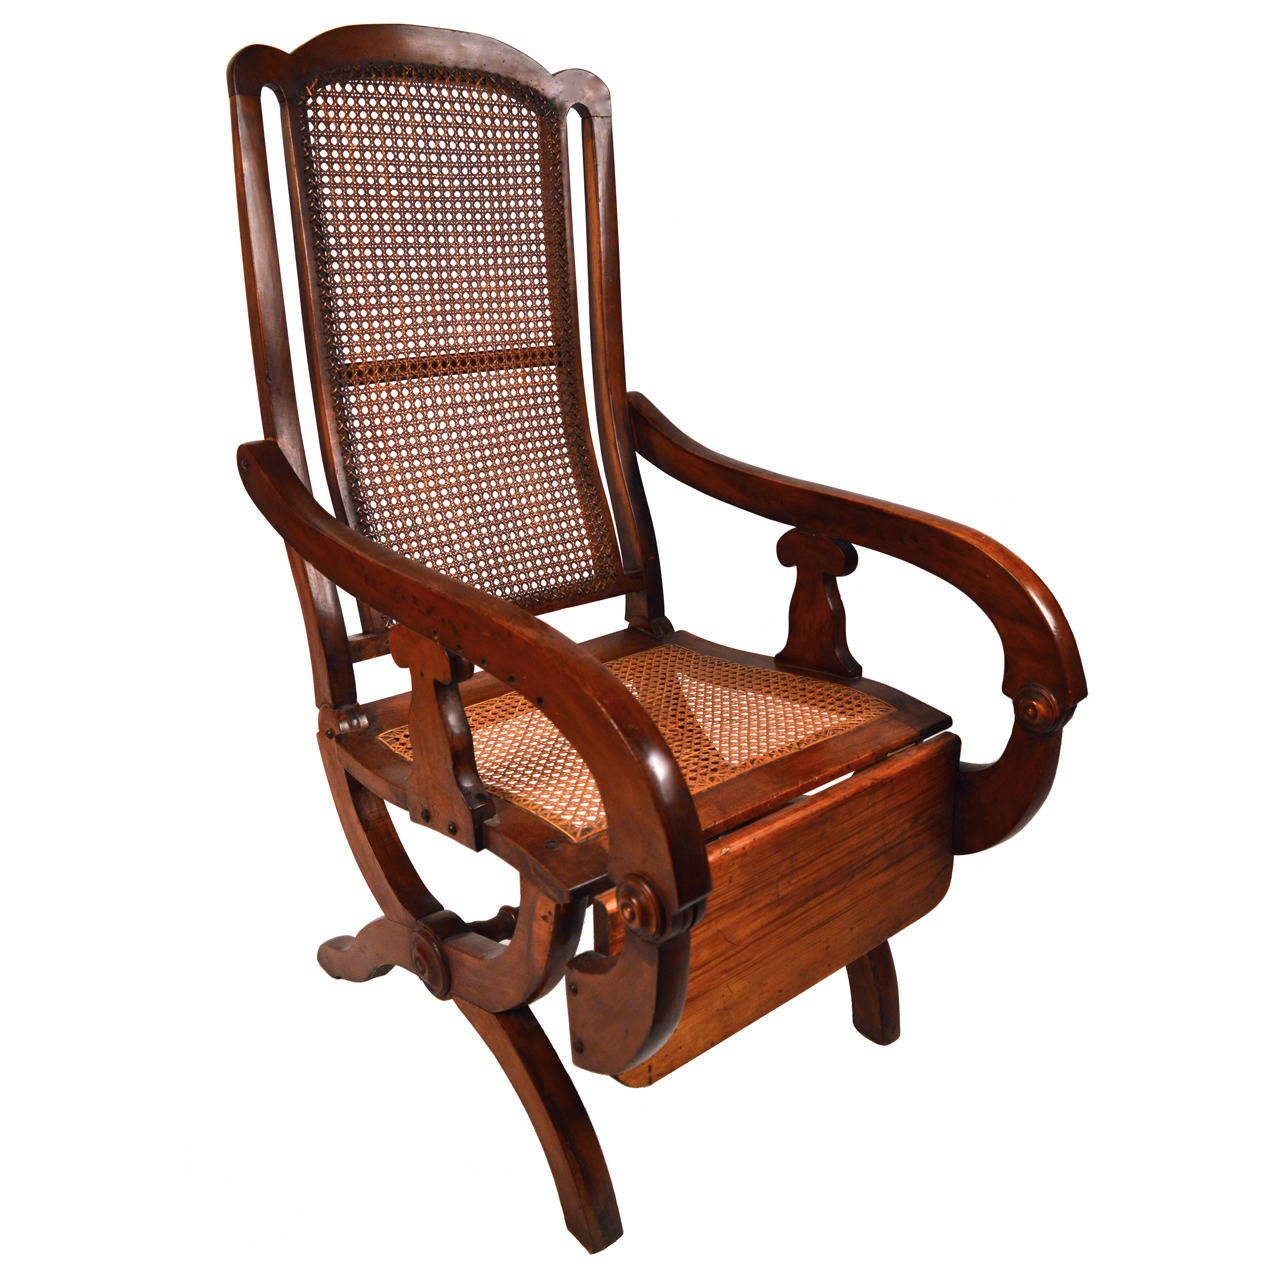 Colonial Chair 19th Century British Colonial Reclining Chair At 1stdibs